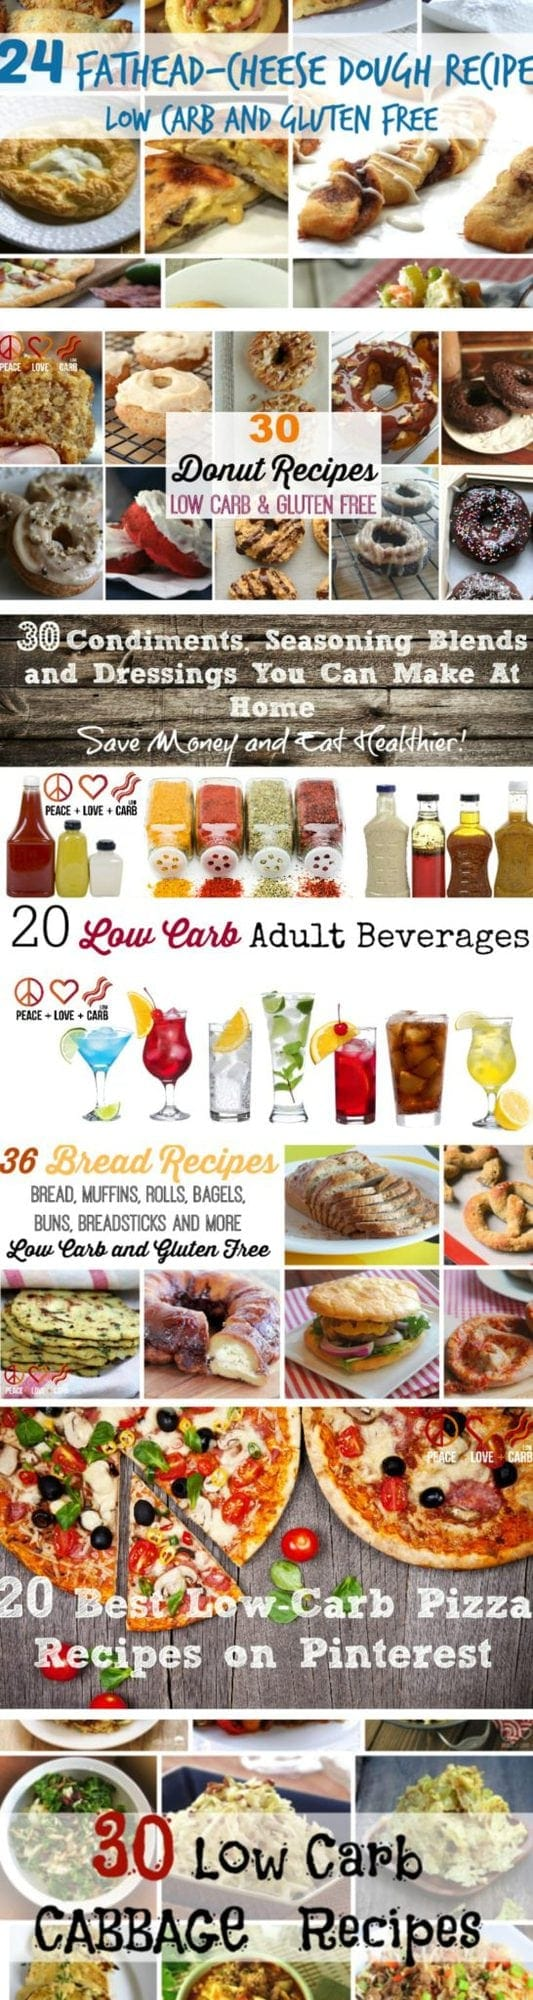 The Great Low Carb Carb Round Up of Round Ups   Peace Love and Low Carb